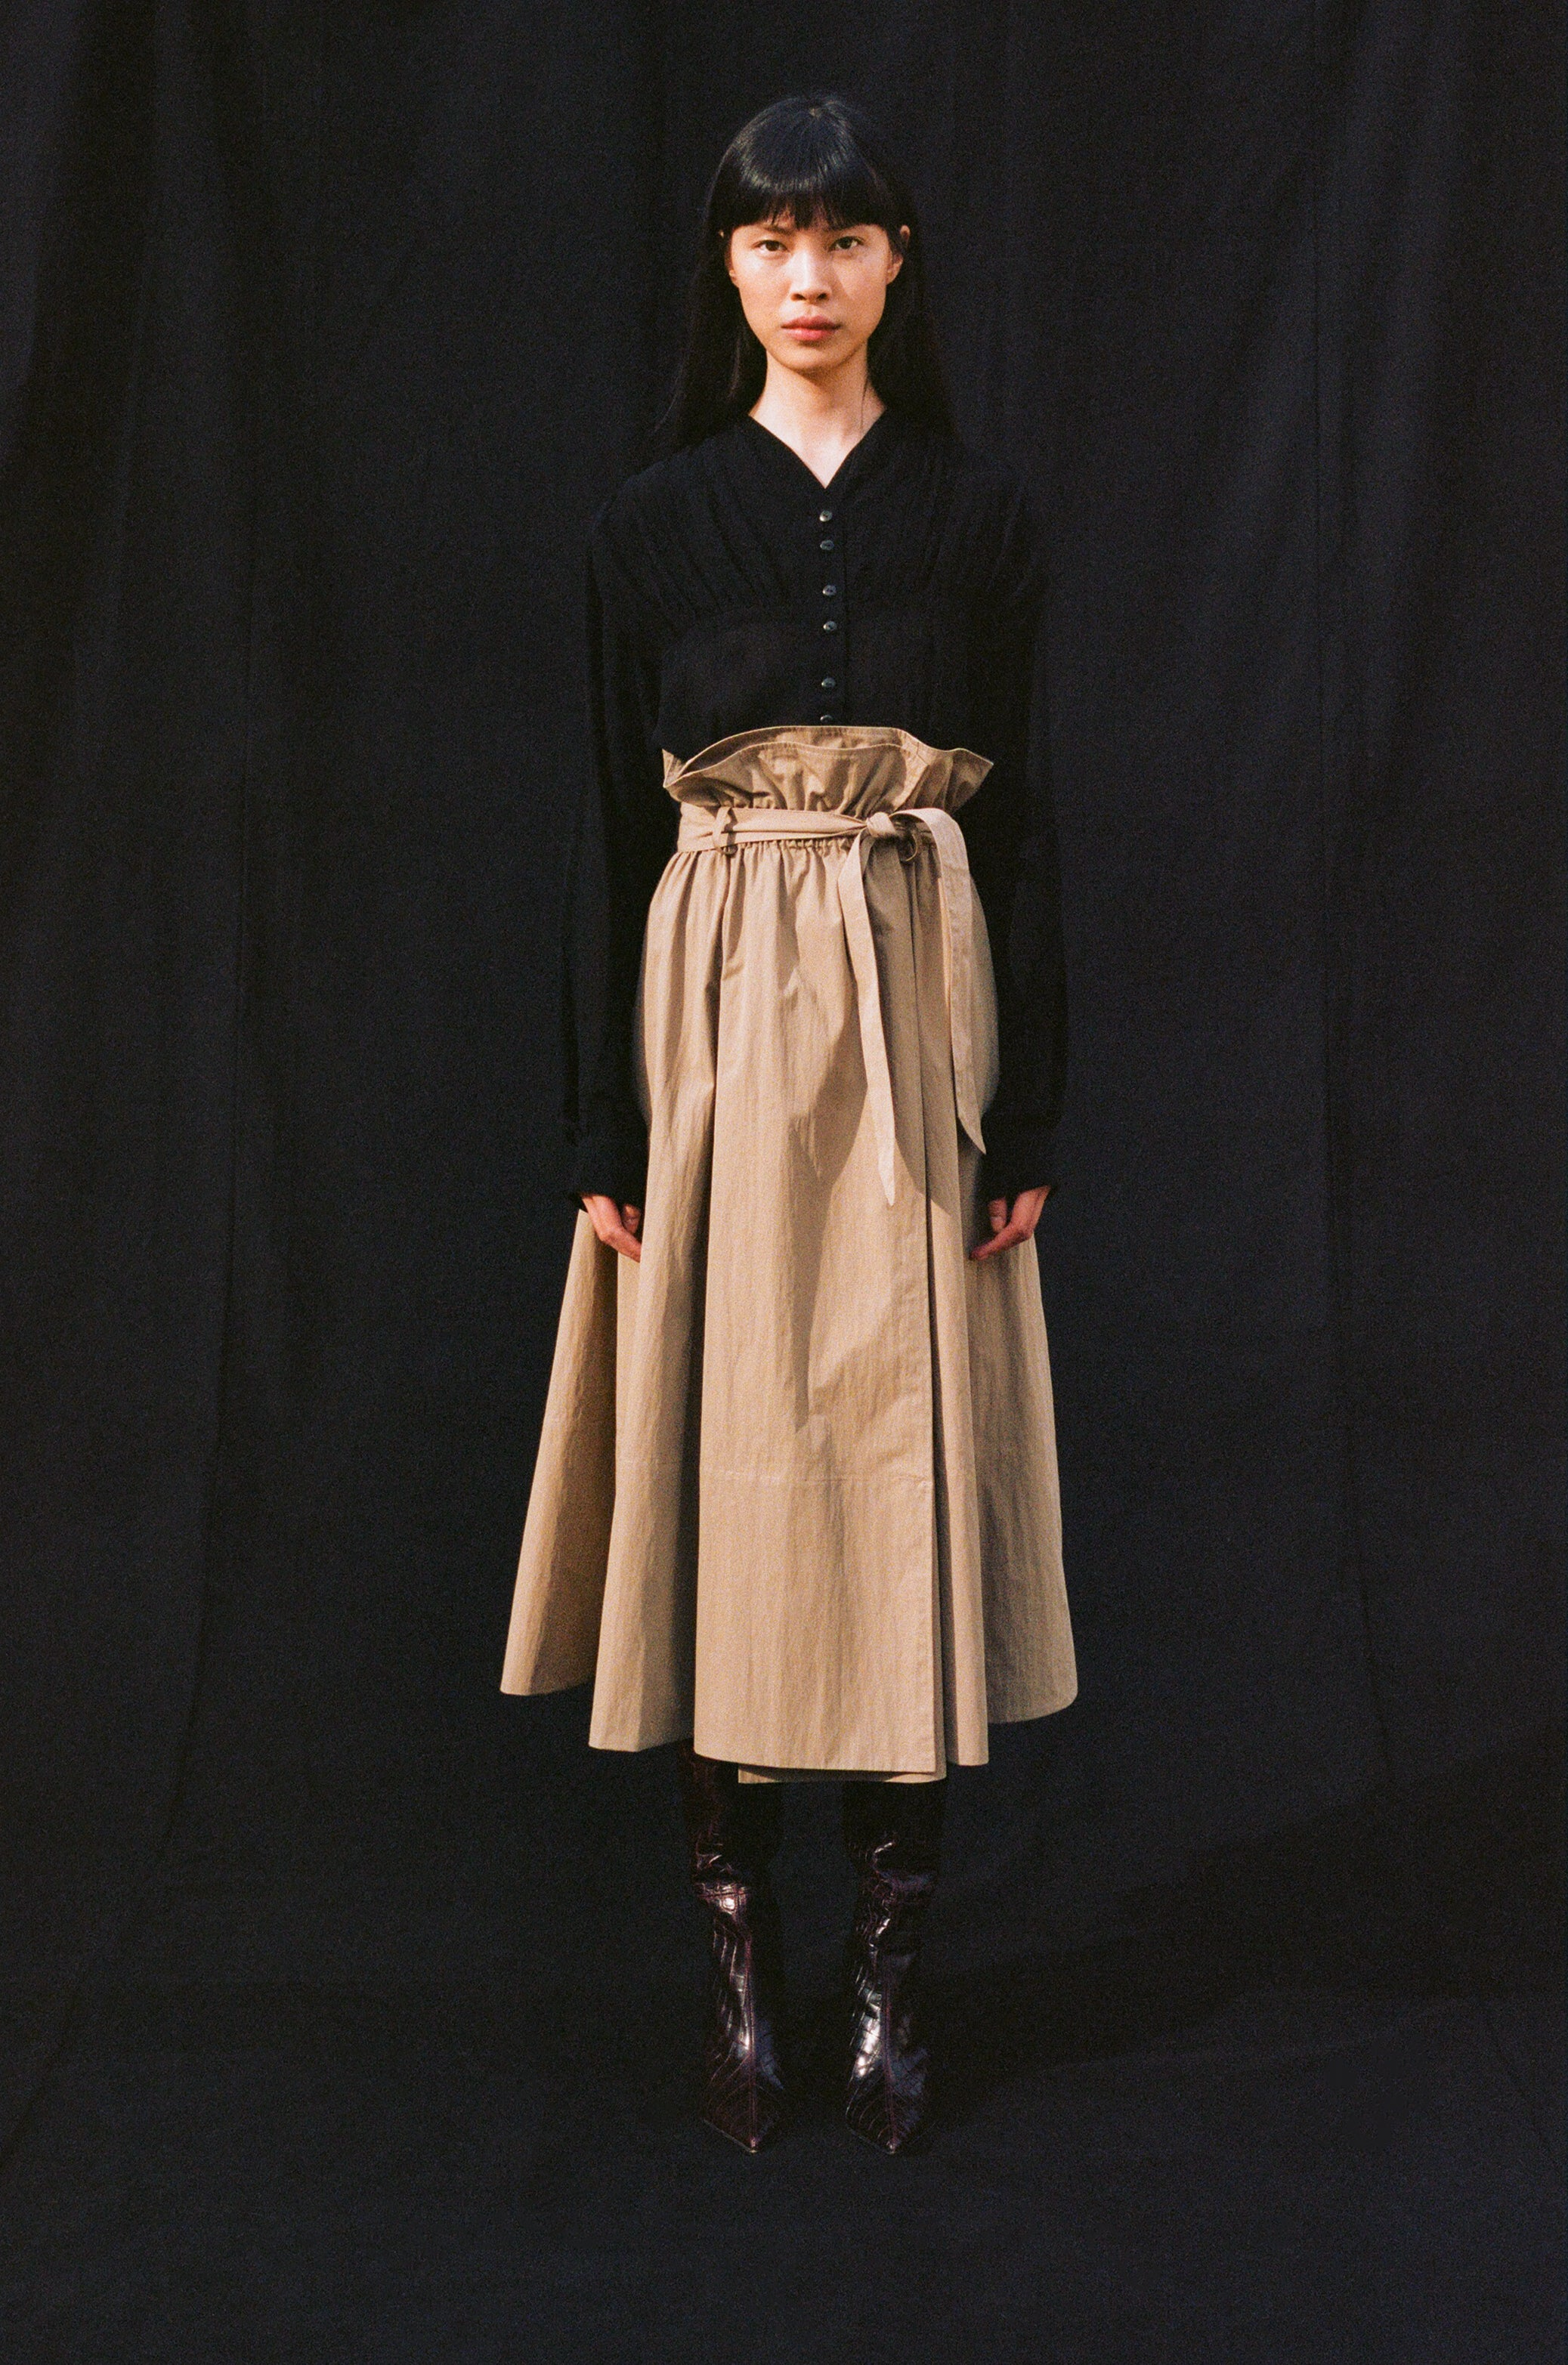 """The <a href=""""https://shainamote.com/collections/new-arrivals/products/sienna-skirt""""target=""""_blank"""">SIENNA SKIRT</a>"""